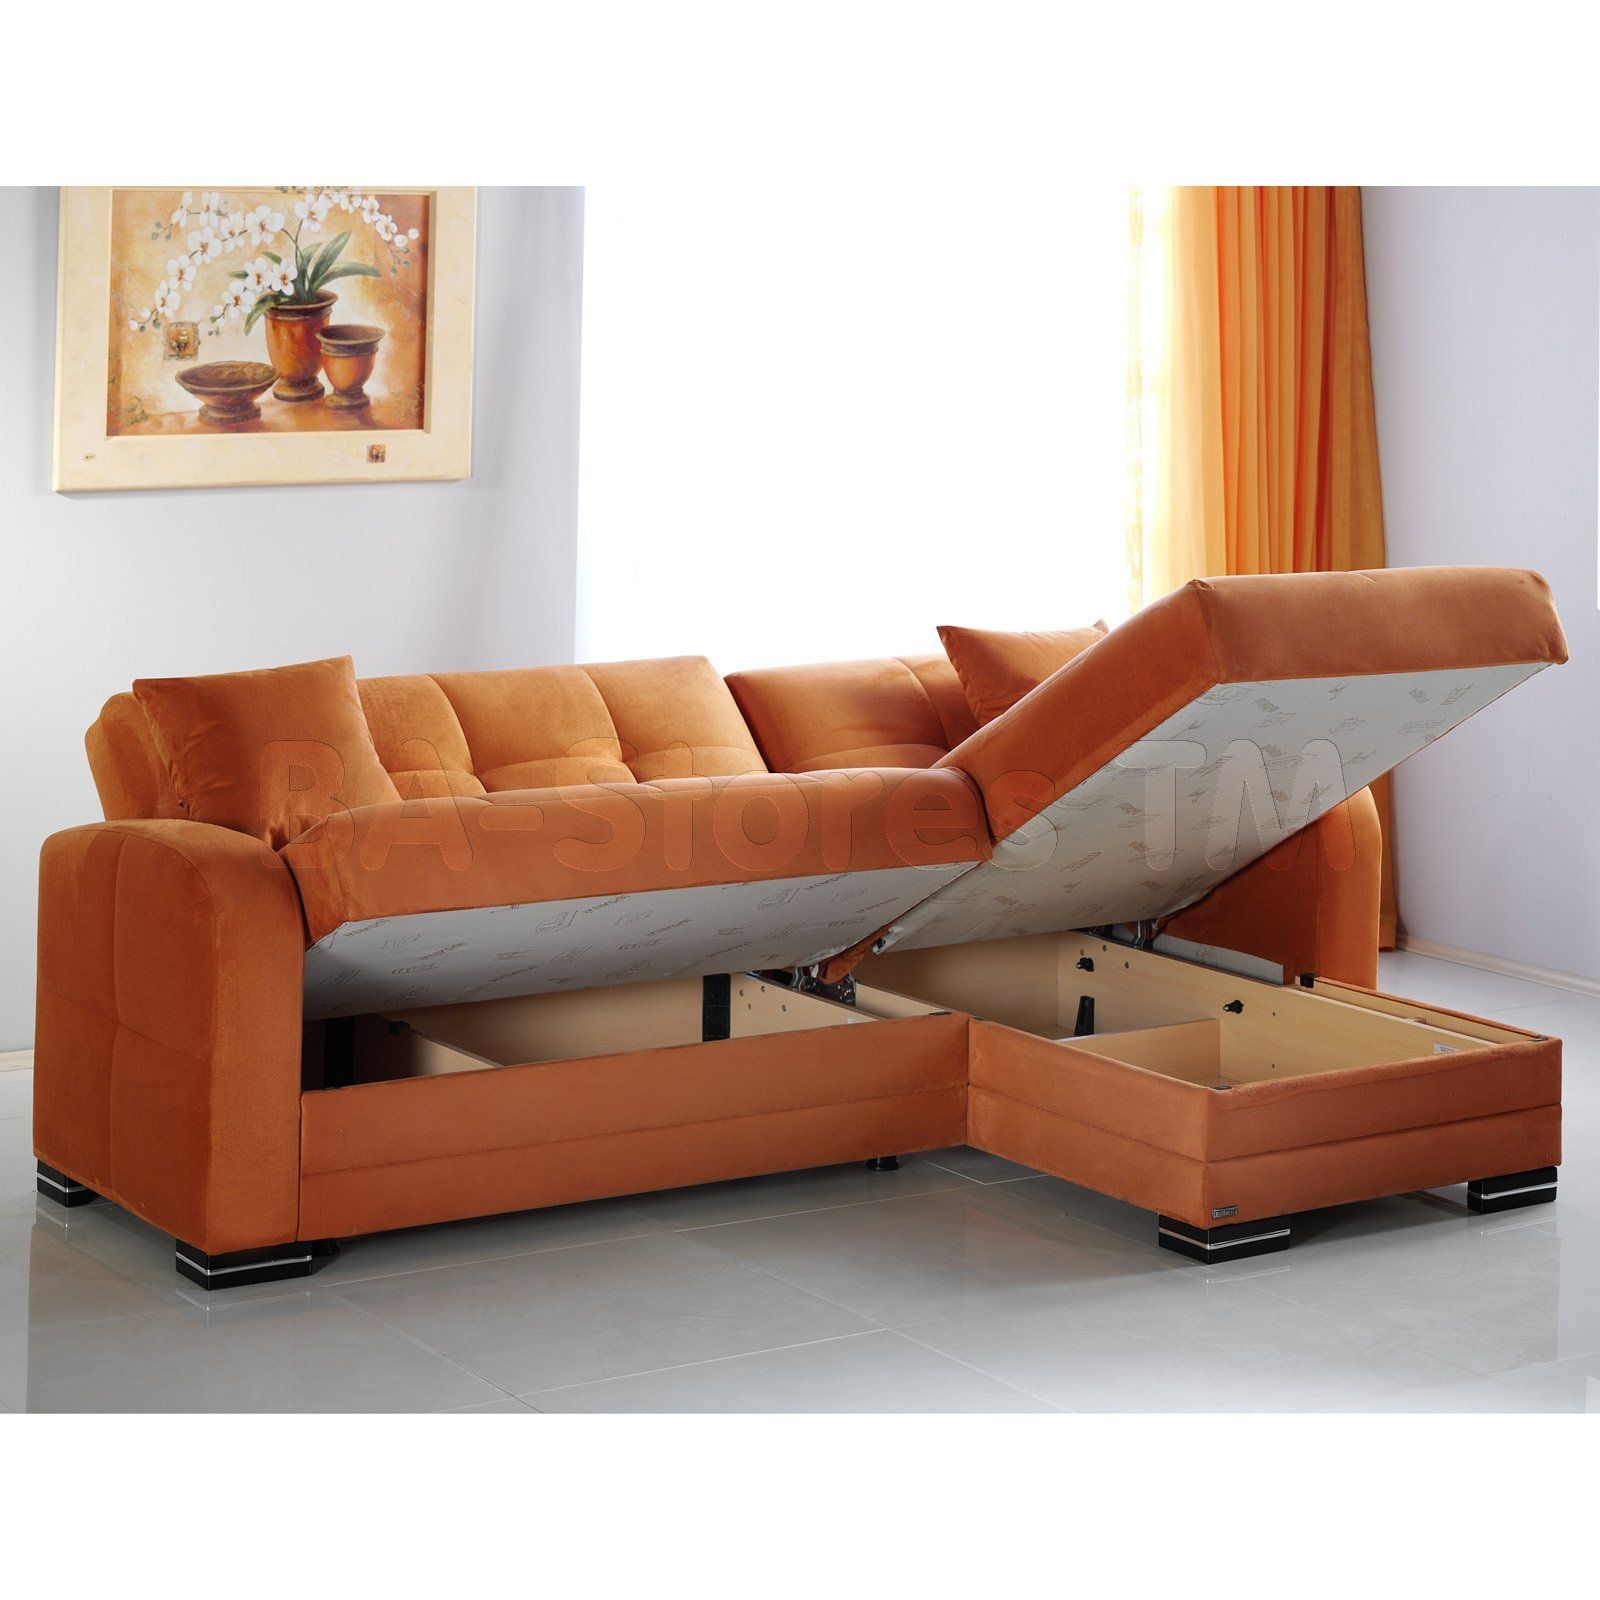 Best Unique Orange Sectional Sofa 14 For Your Living Room Sofa 400 x 300